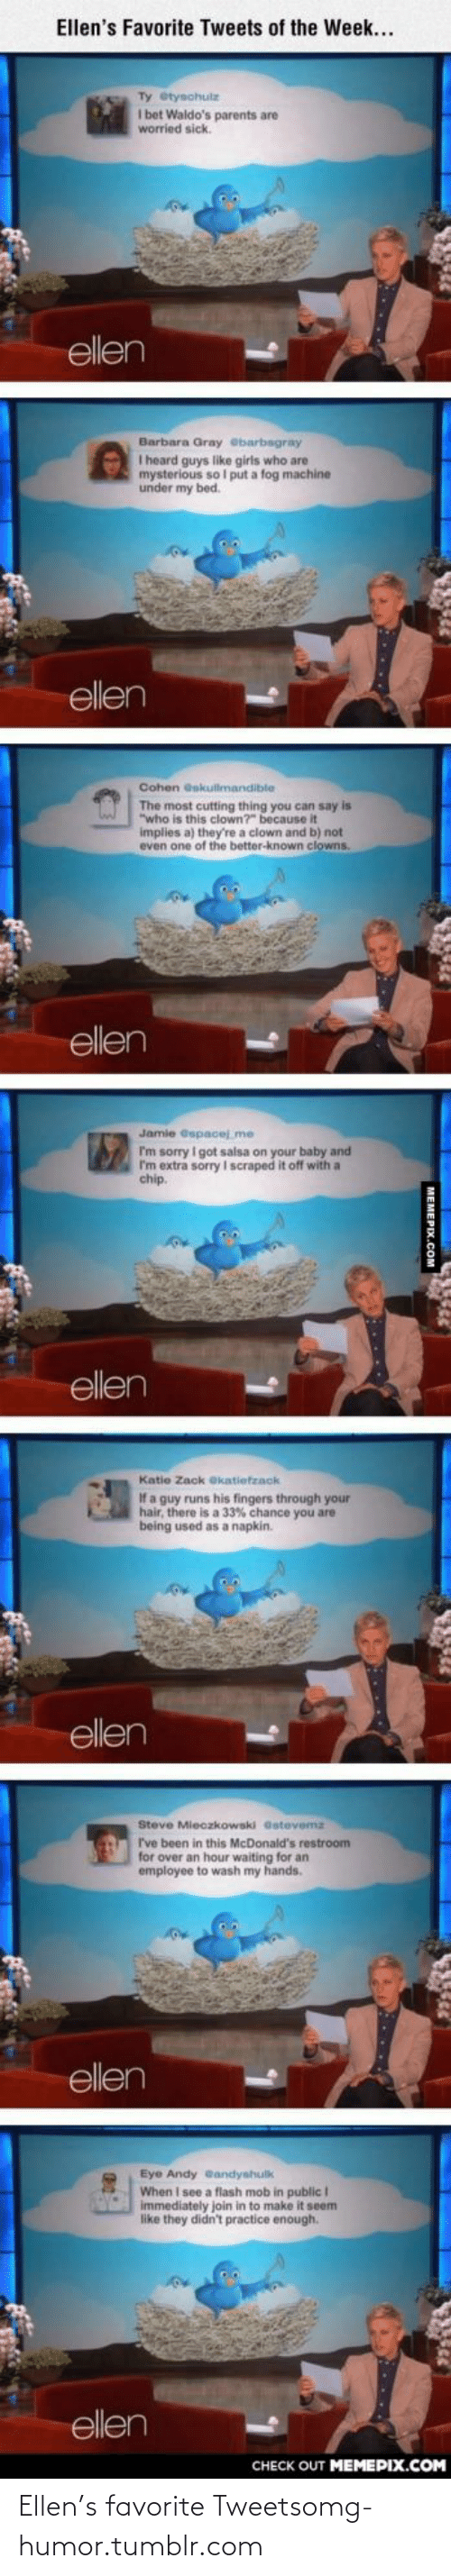 """flash mob: Ellen's Favorite Tweets of the Week...  Ty etysohulz  I bet Waldo's parents are  worried sick.  ellen  Barbara Gray ebarbagray  I heard guys like girls who are  mysterious so I put a fog machine  under my bed.  ellen  Cohen eskultmandible  The most cutting thing you can say is  """"who is this clown?"""" because it  implies a) they're a clown and b) not  even one of the better-known clowns.  ellen  Jamie Gspaoej_me  I'm sorry I got salsa on your baby and  I'm extra sorry I scraped it off with a  chip.  ellen  Katie Zack ekatietzack  If a guy runs his fingers through your  hair, there is a 33% chance you are  being used as a napkin.  ellen  Steve Mieczkowski Gstevemz  C ve been in this McDonald's restroom  for over an hour waiting for an  employee to wash my hands.  ellen  Eye Andy eandyshulk  When I see a flash mob in public I  immediately join in to make it seem  like they didn't practice enough.  ellen  CHECK OUT MEMEPIX.COM  MEMERIY C Ellen's favorite Tweetsomg-humor.tumblr.com"""